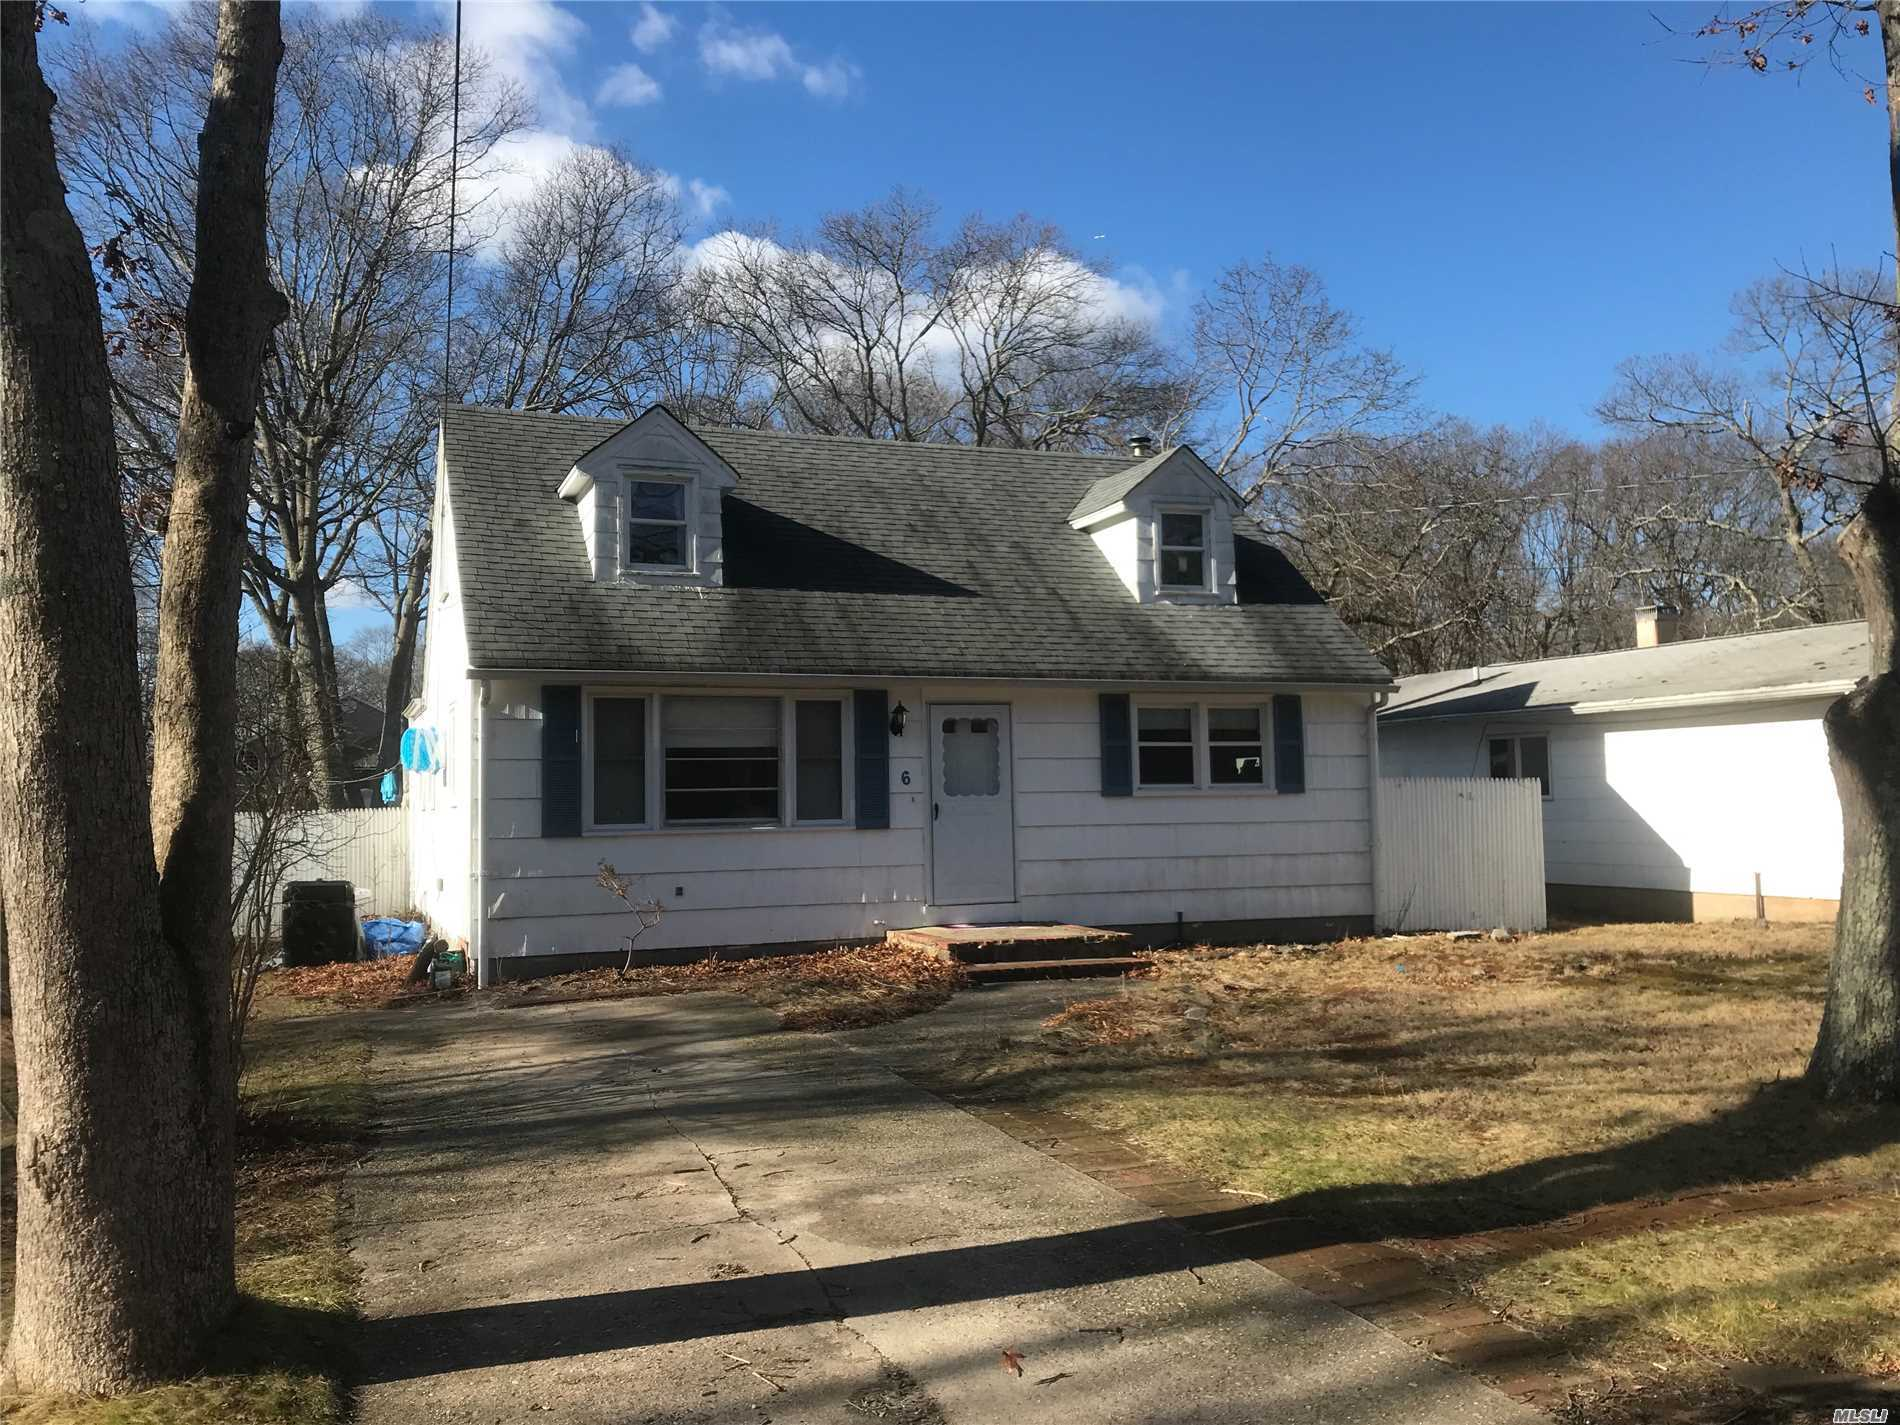 Well Loved Home! Bright Home With Oversized Kitchen, Laundry Room Off Kitchen, 4 Bedrooms, Ample Closet Space, Large Back Yard